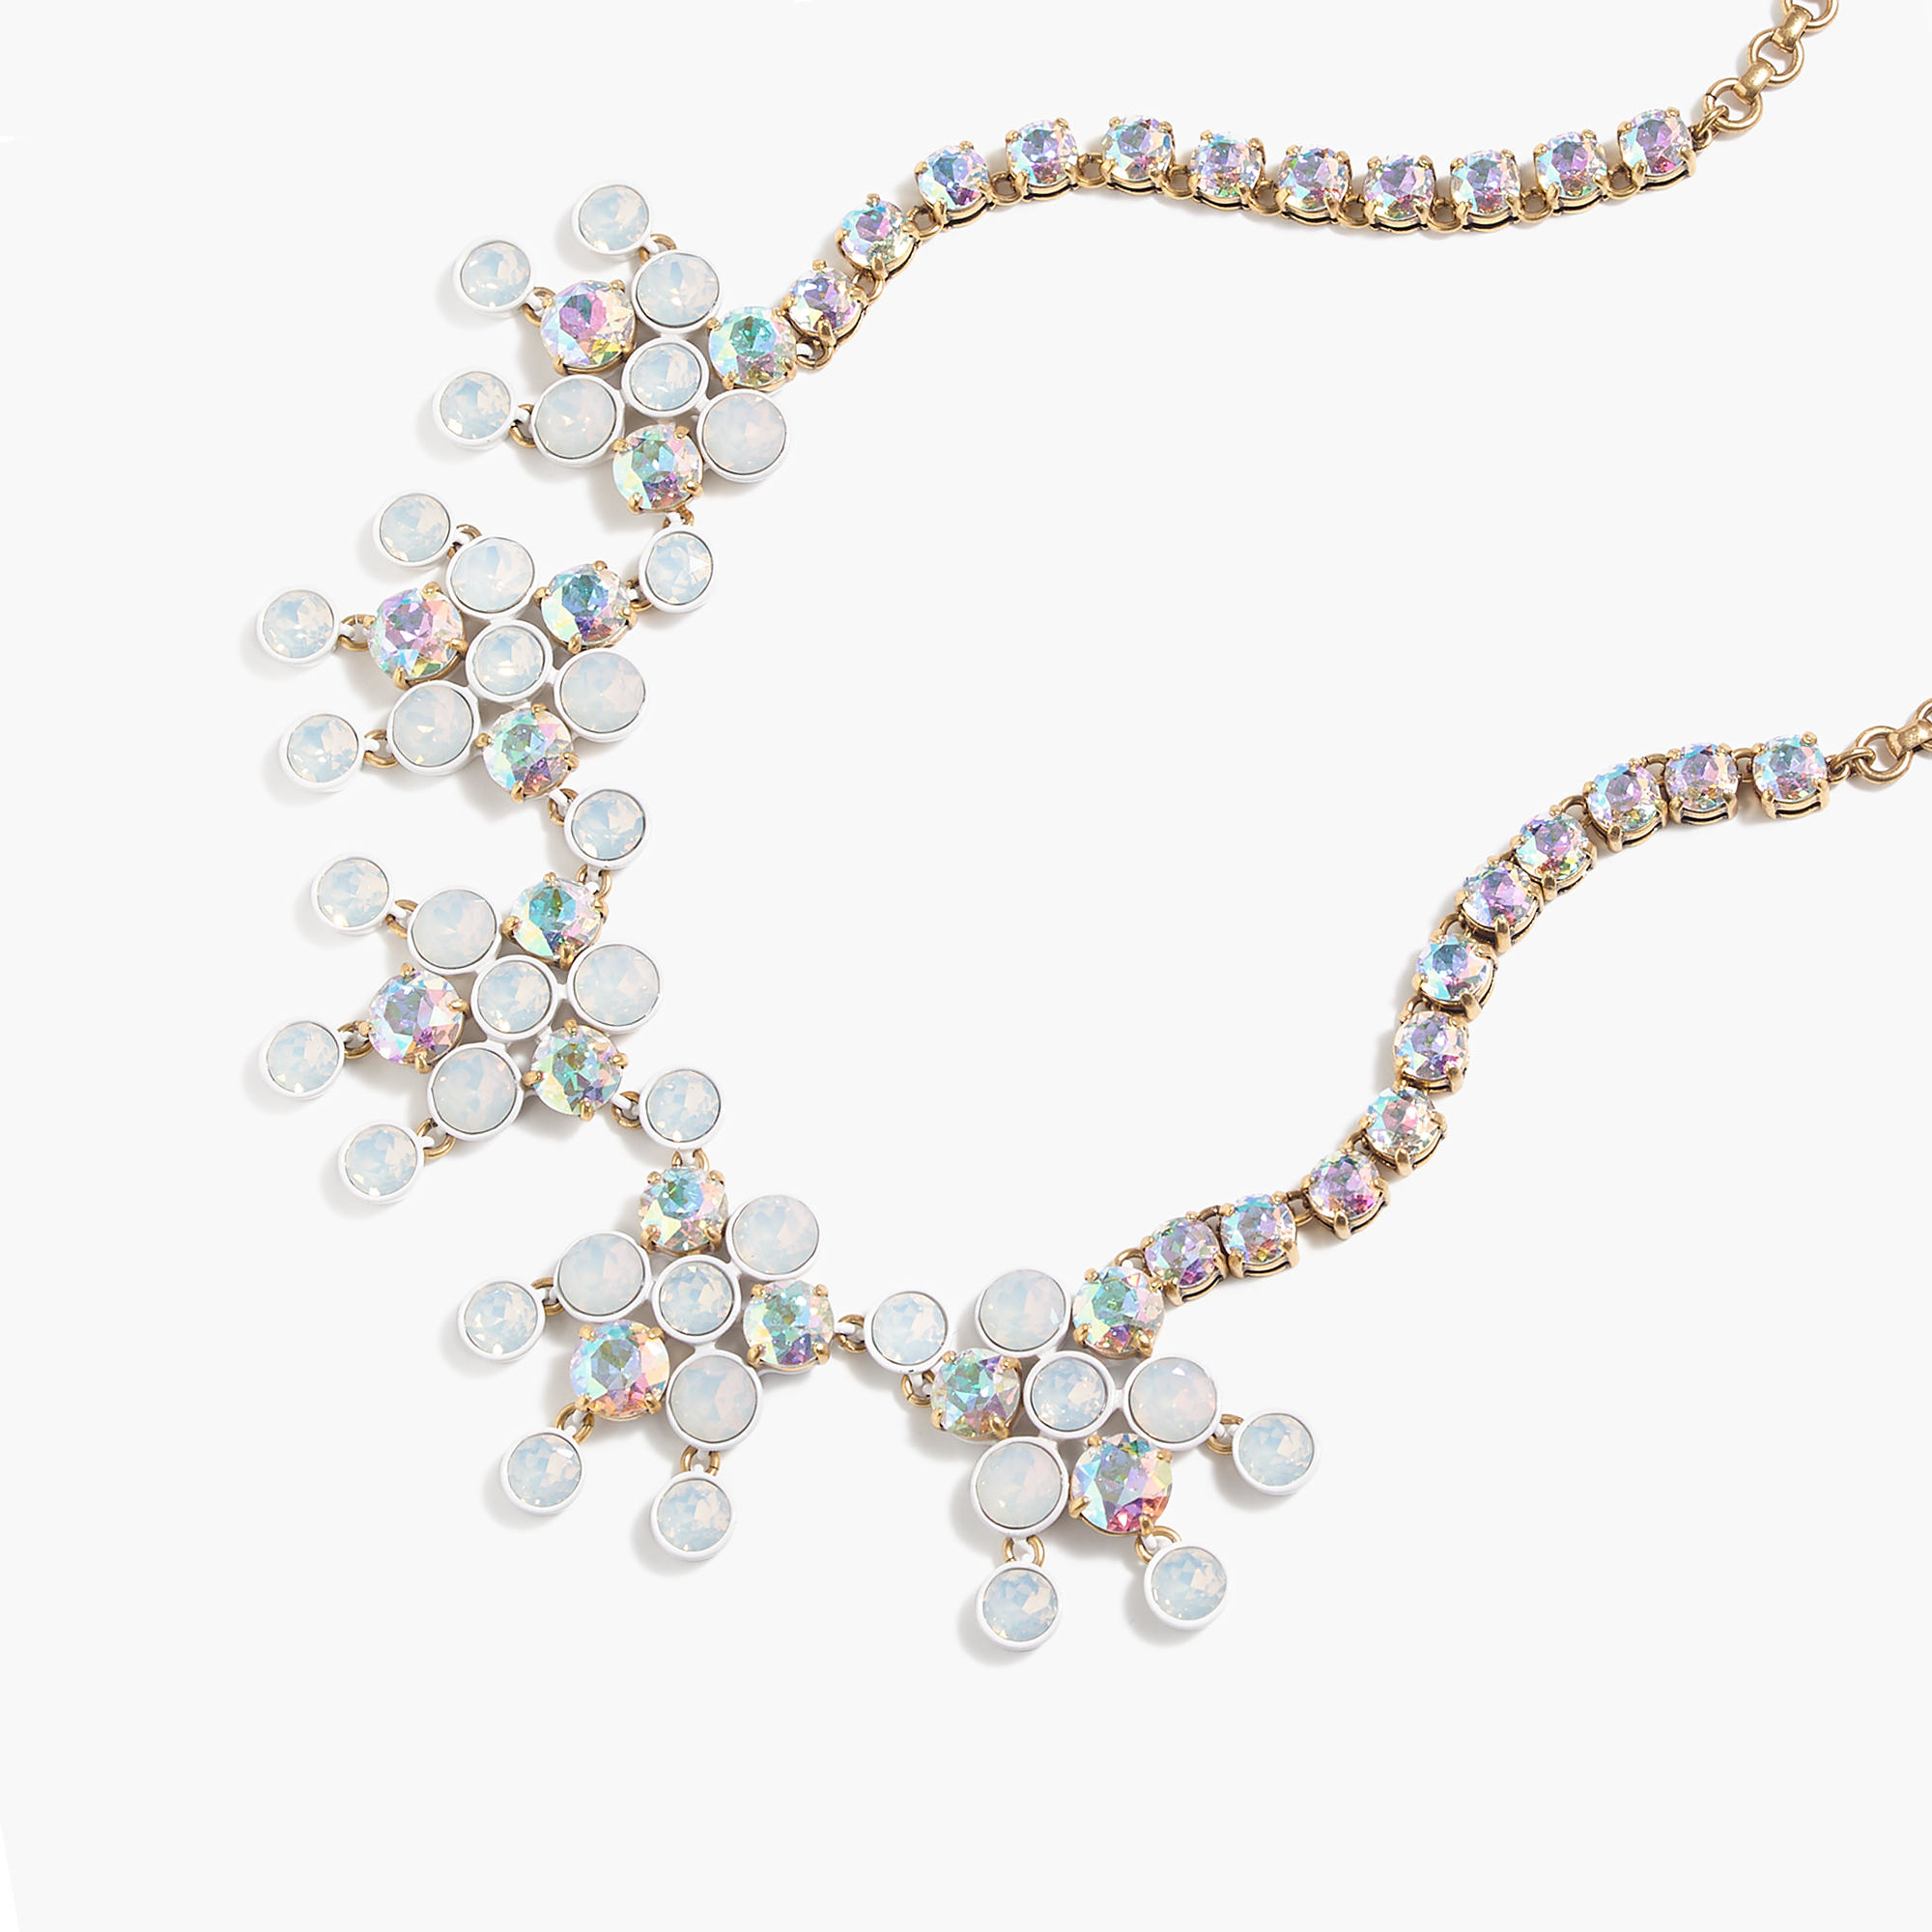 Crystal chandelier necklace in metallic lyst for J crew jewelry 2015